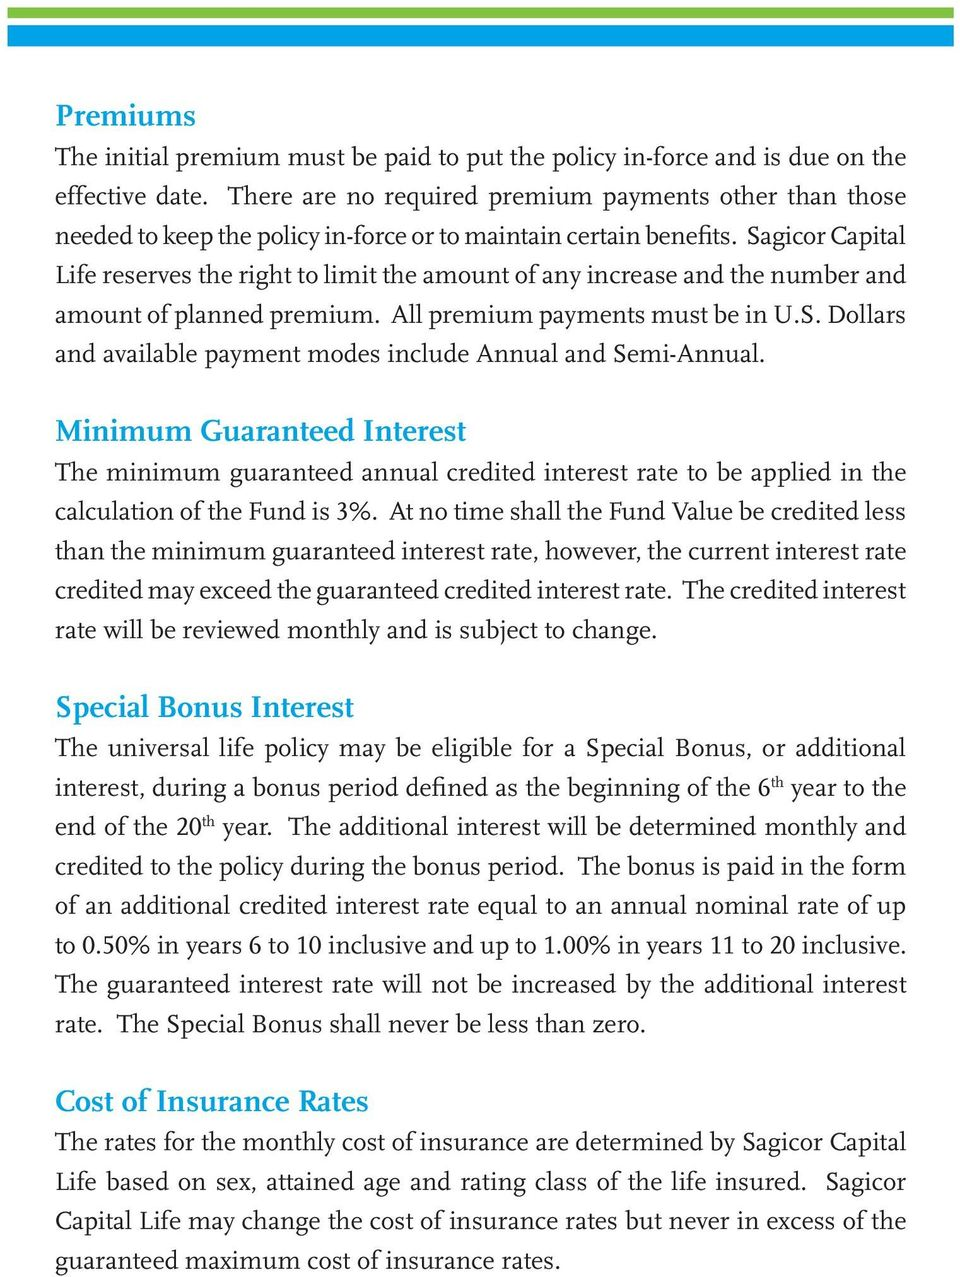 Sagicor Capital Life reserves the right to limit the amount of any increase and the number and amount of planned premium. All premium payments must be in U.S. Dollars and available payment modes include Annual and Semi-Annual.